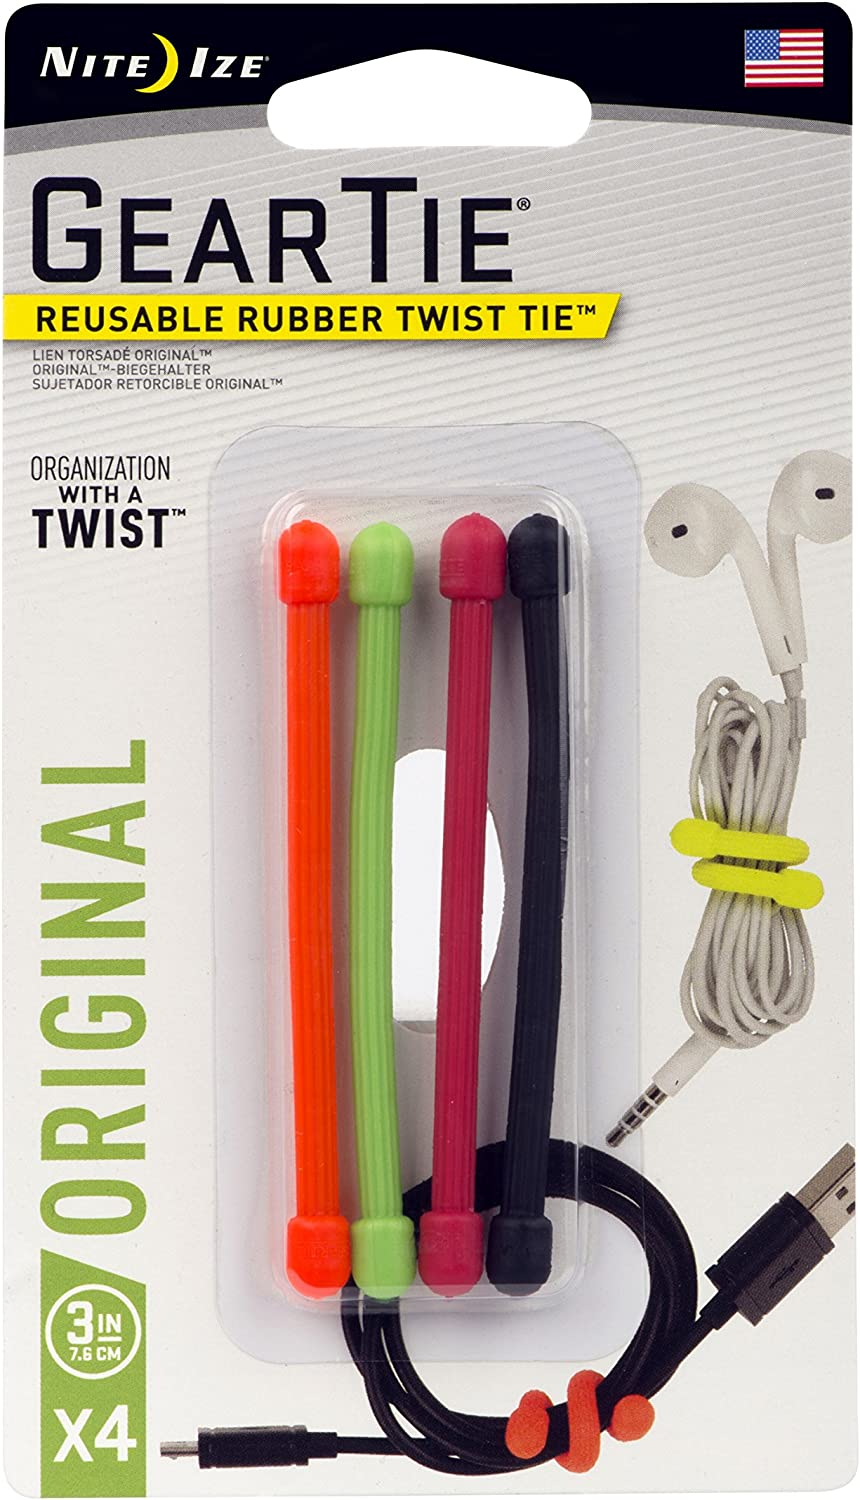 Nite Ize Gear Tie Square Assortment Reusable Rubber Twist Ties 3-Pack of 8